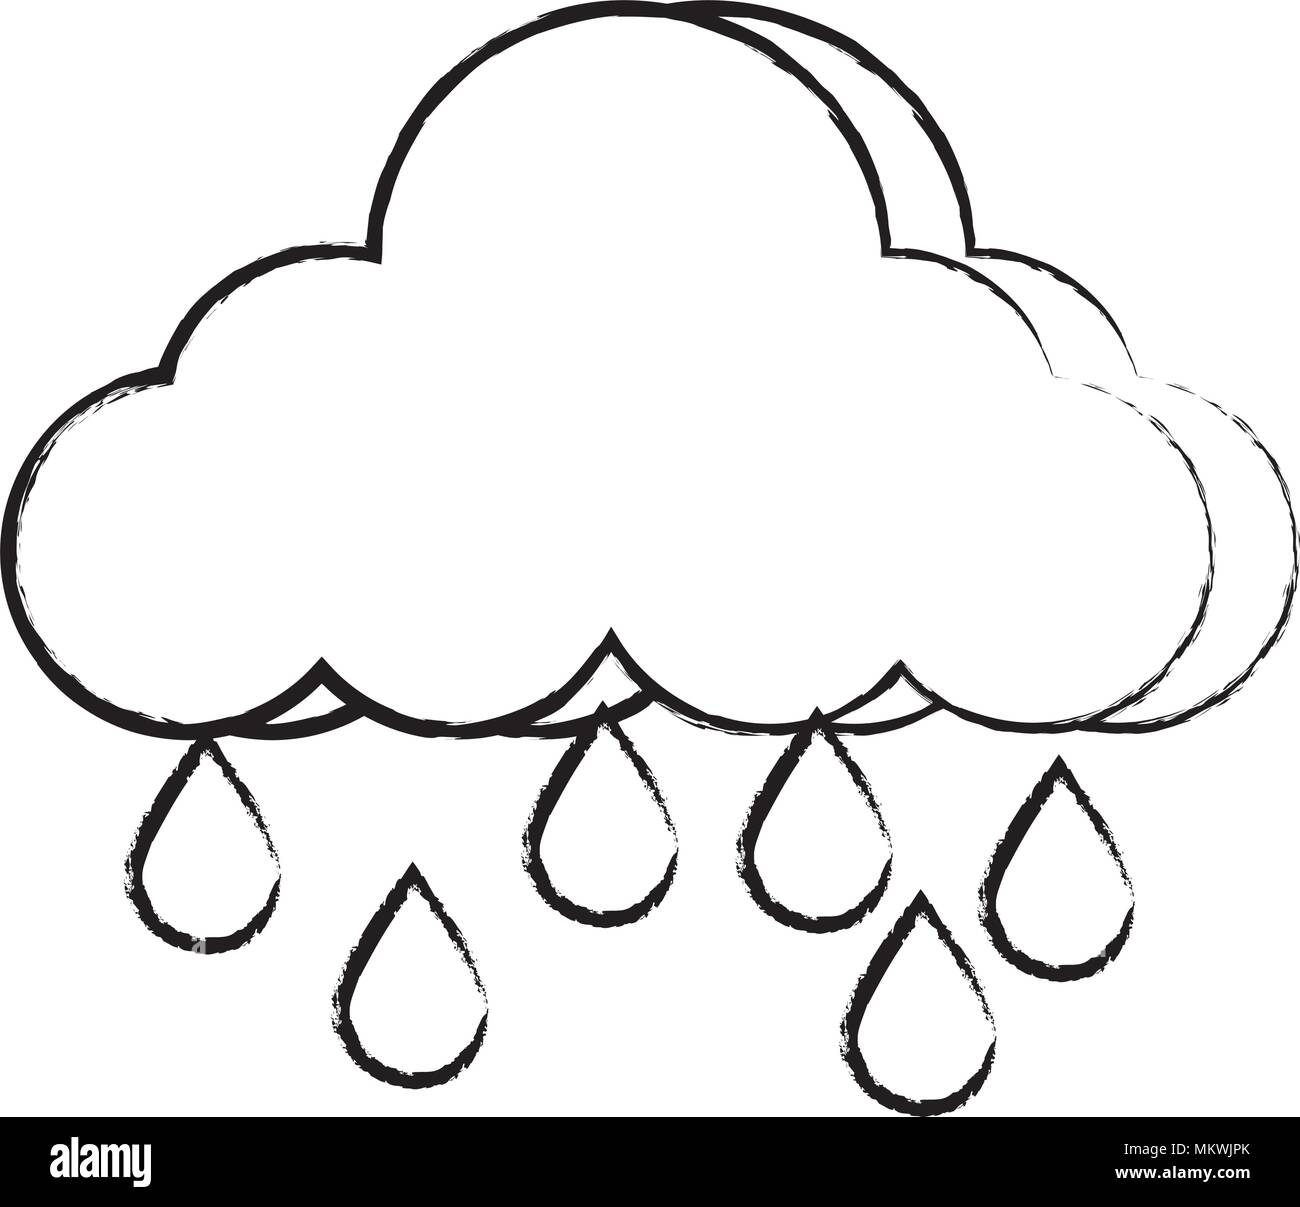 cloud with rainy drops icon over white background, vector illustration - Stock Image